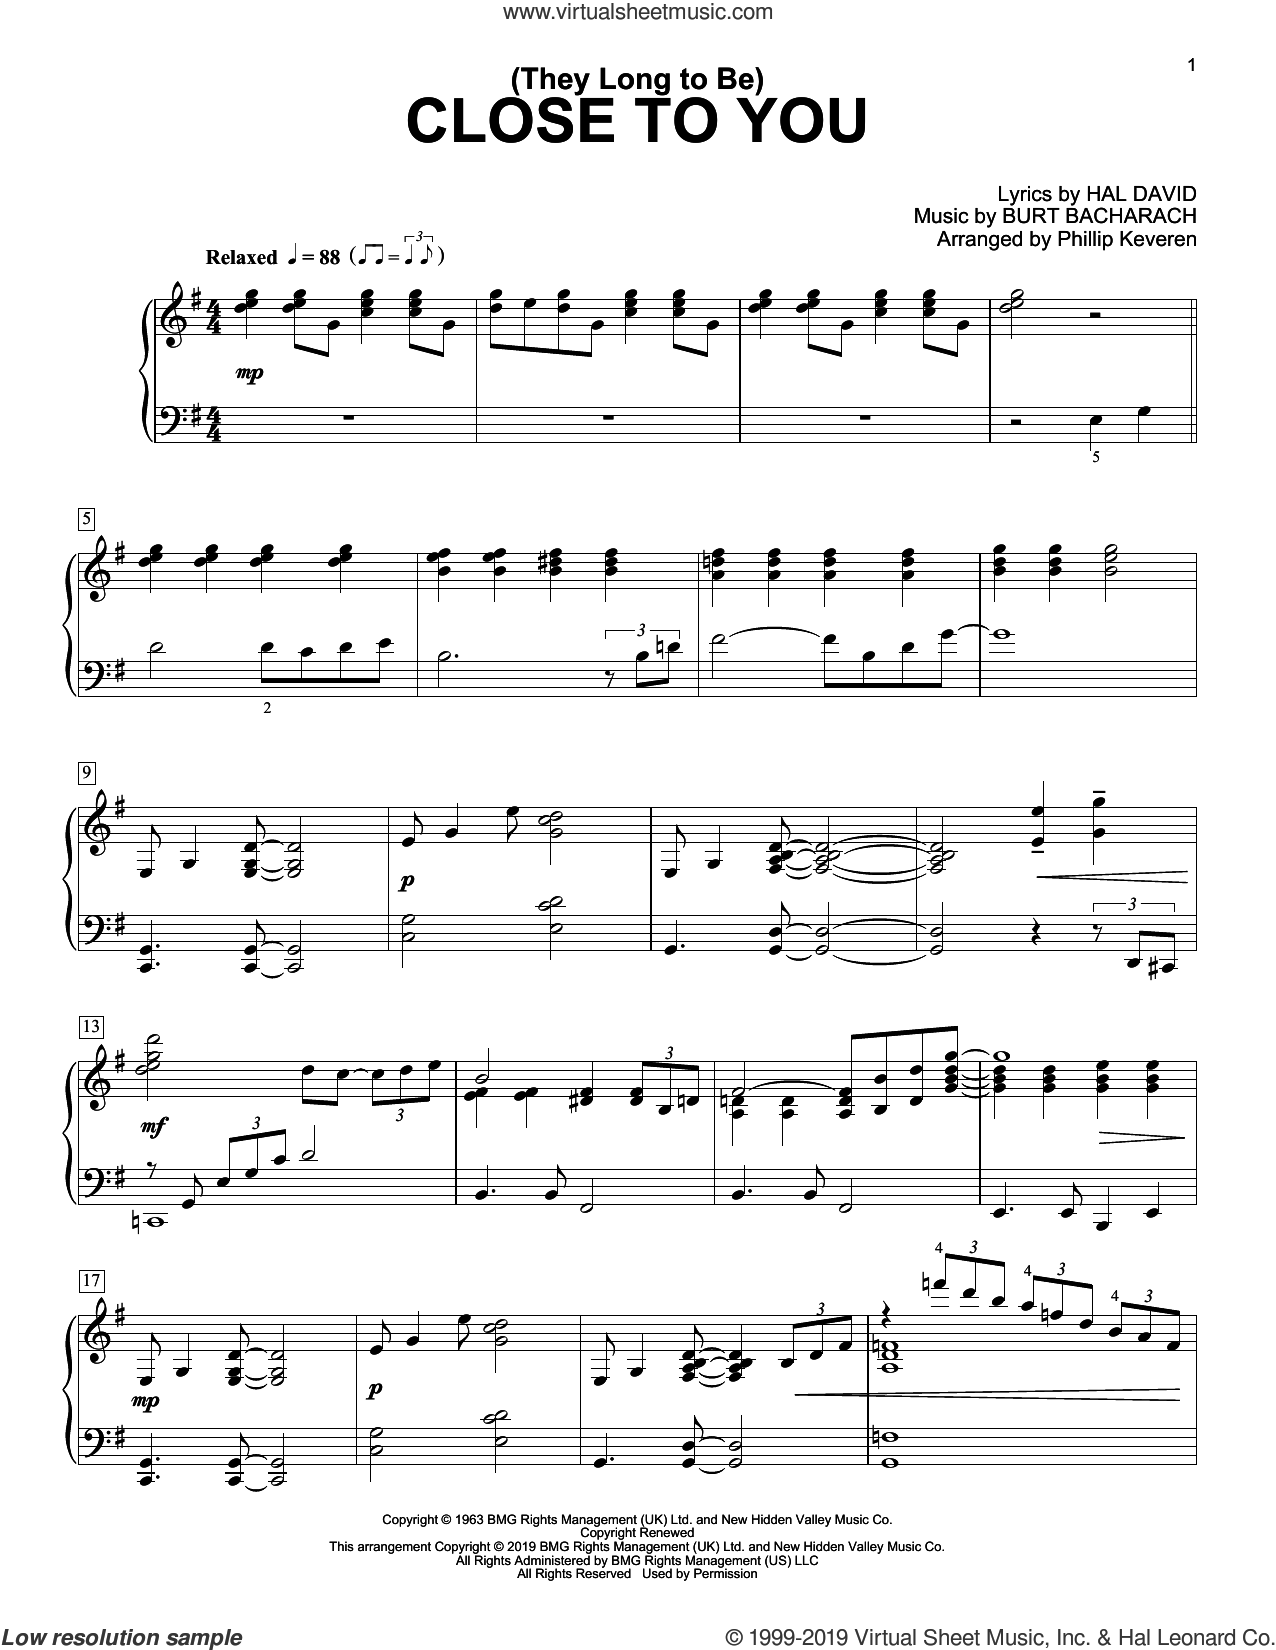 (They Long To Be) Close To You (arr. Phillip Keveren) sheet music for piano solo by Carpenters, Phillip Keveren, Burt Bacharach and Hal David, intermediate skill level